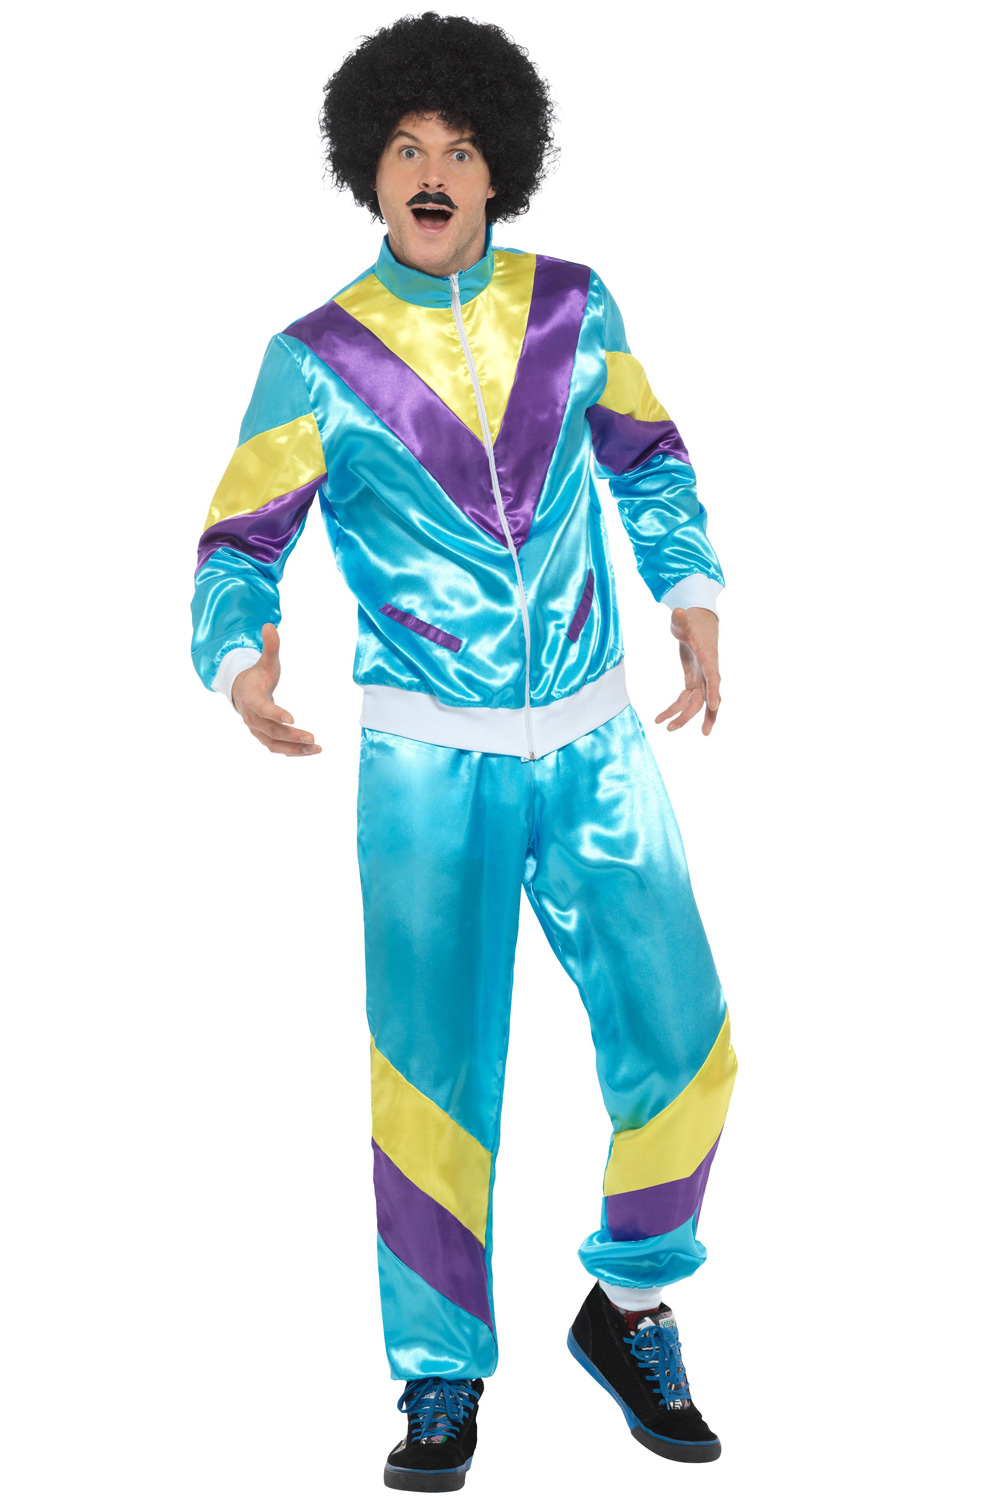 80s Fashion Male Shell Suit Adult Costume - PureCostumes.com